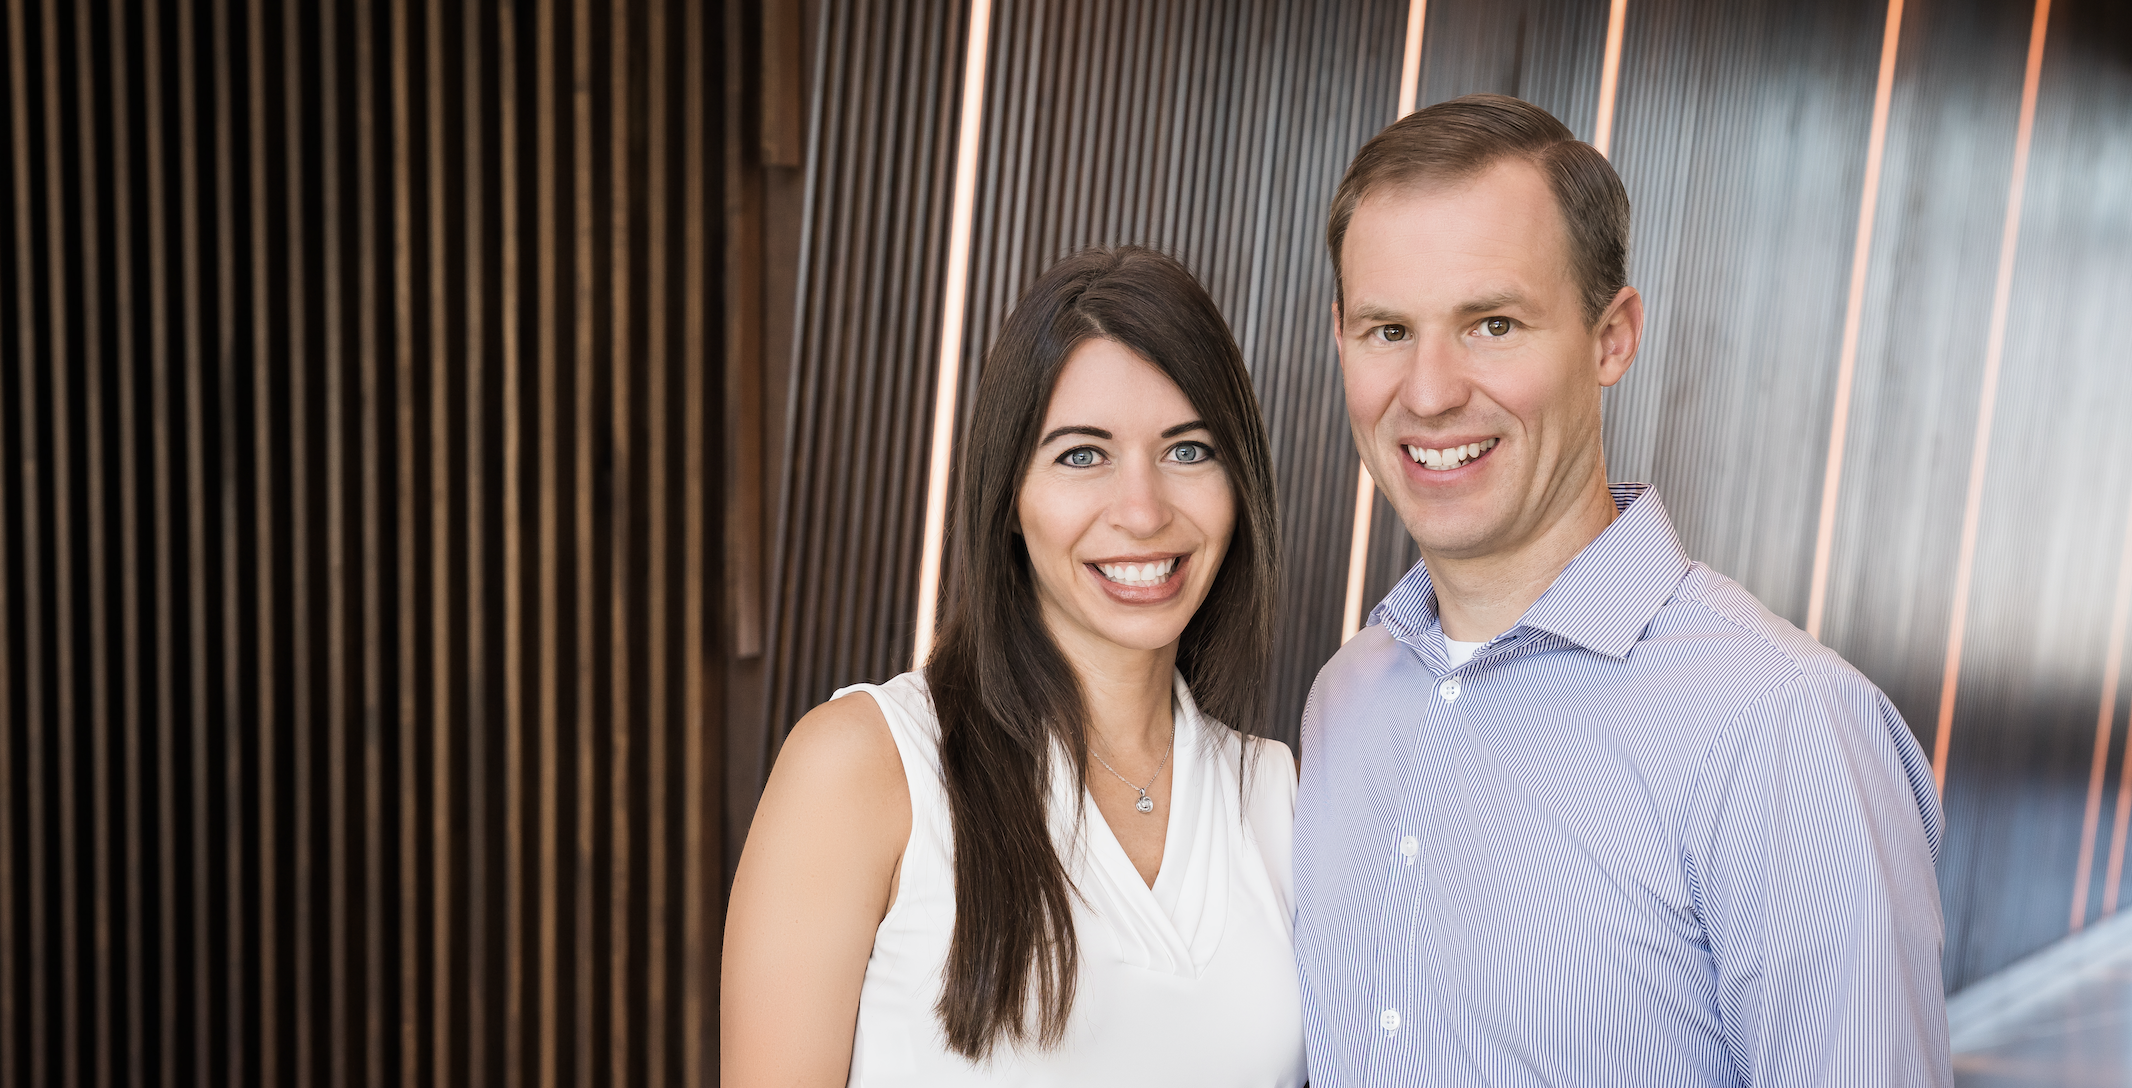 Pattern Co-Founders, Melanie Alder and David Wright, founded Pattern in 2013.